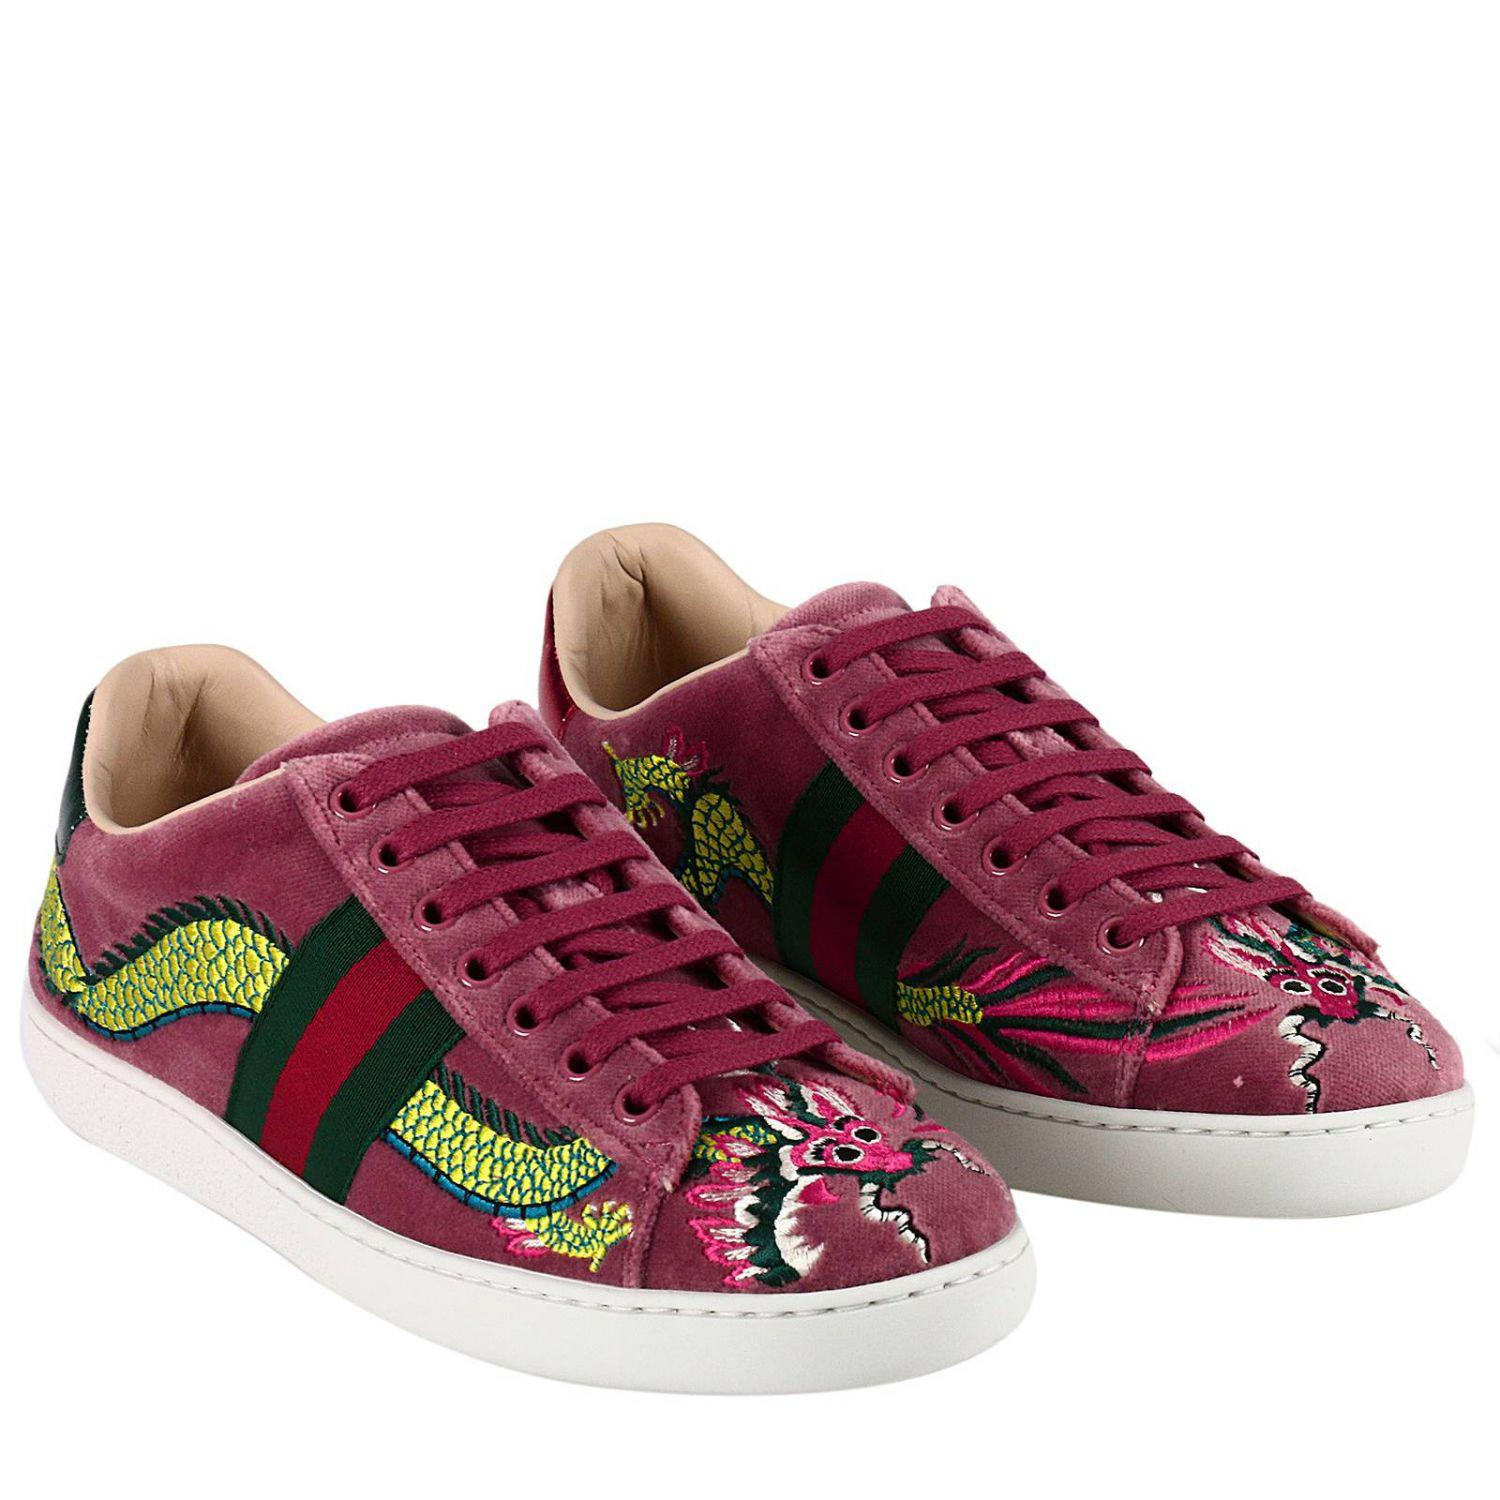 2c7973232 Gucci Velvet New Ace Sneaker With Side Web Bands And Dragon ...